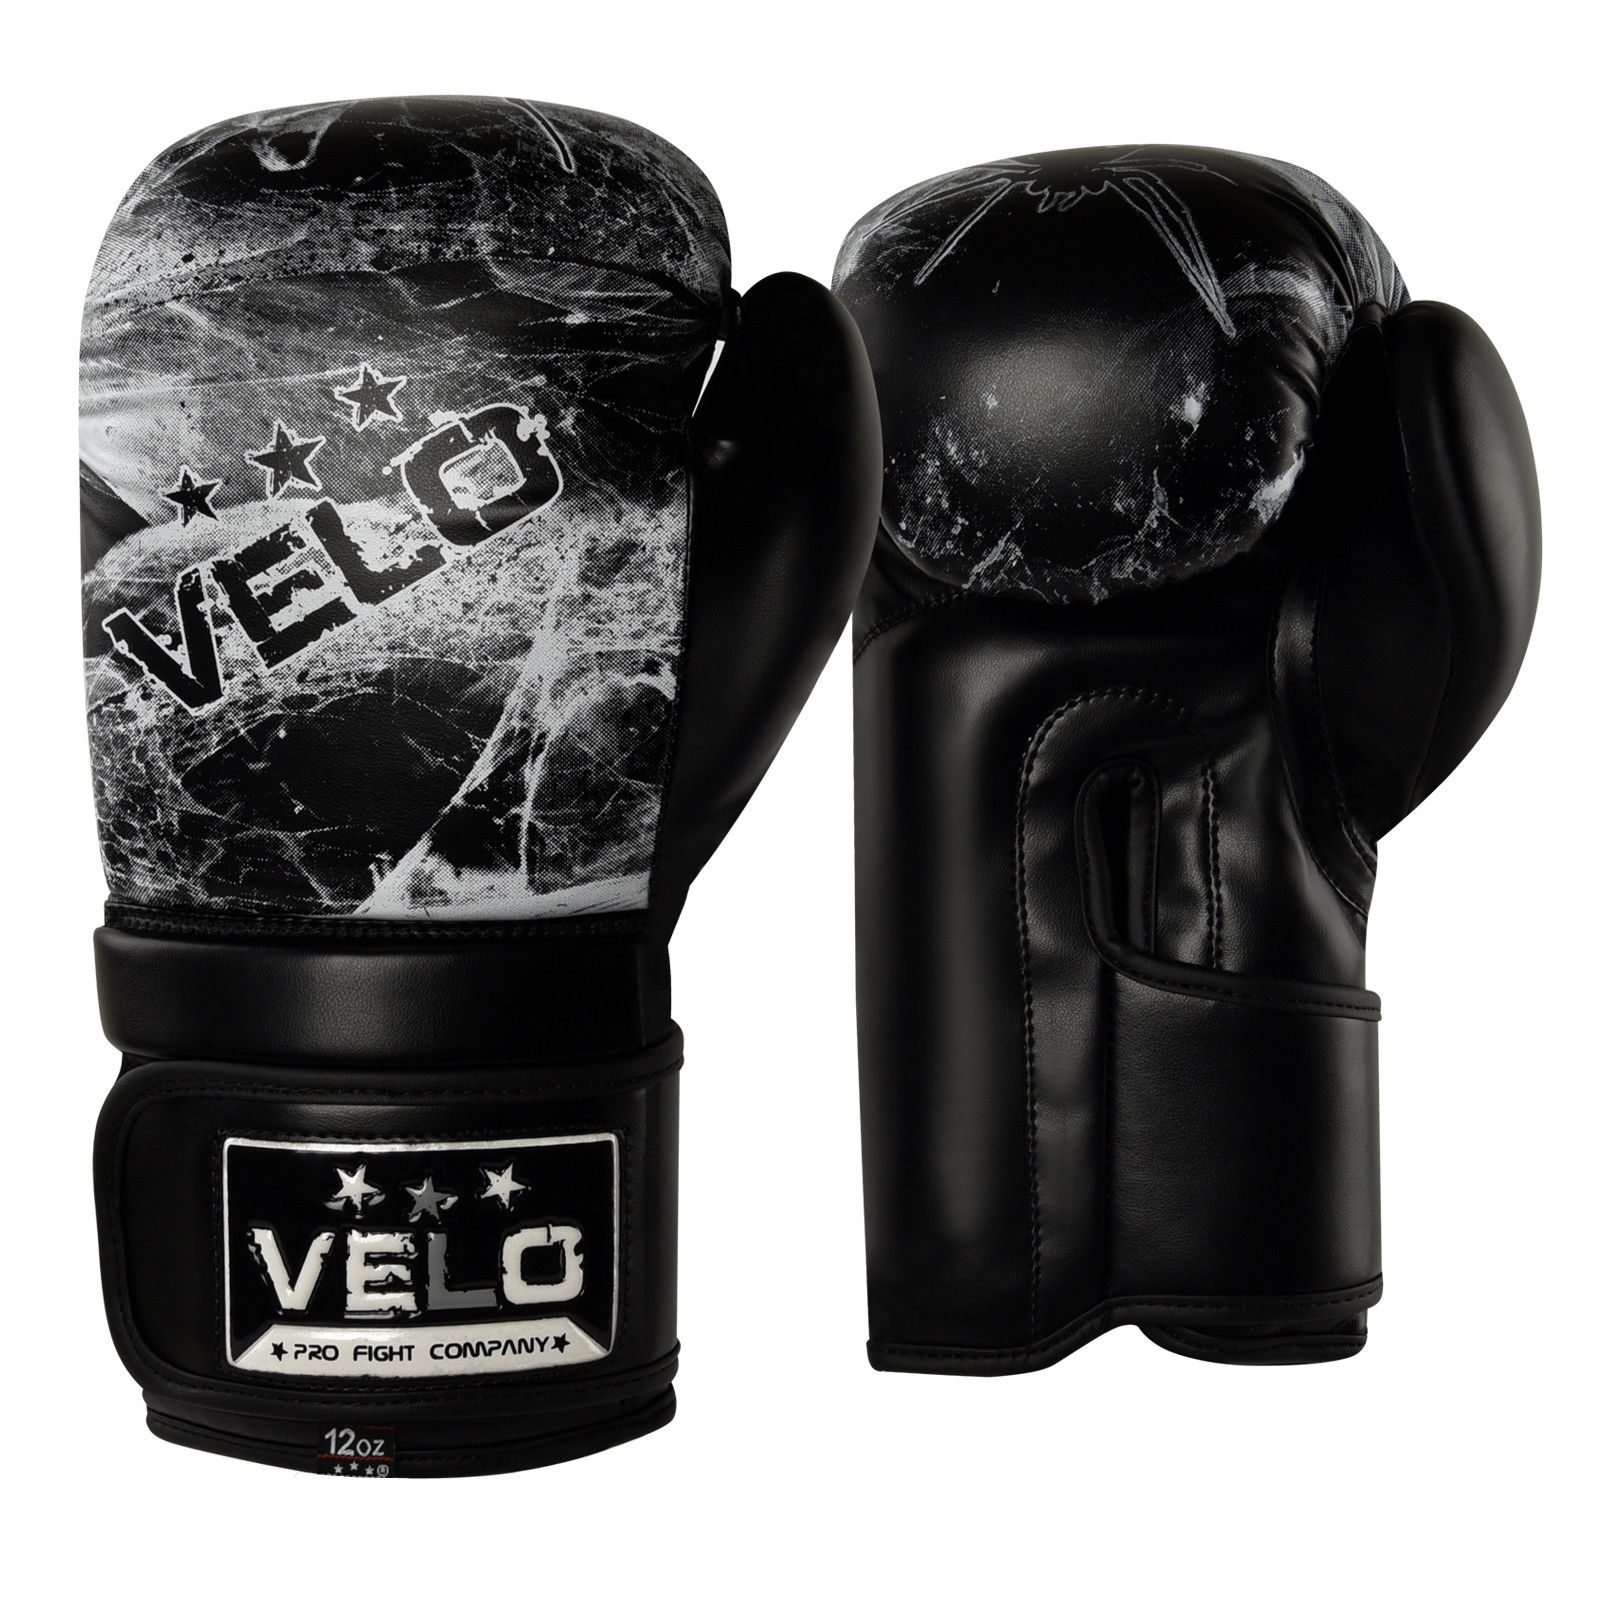 VELO Boxing Gloves - Black Boxing Gloves